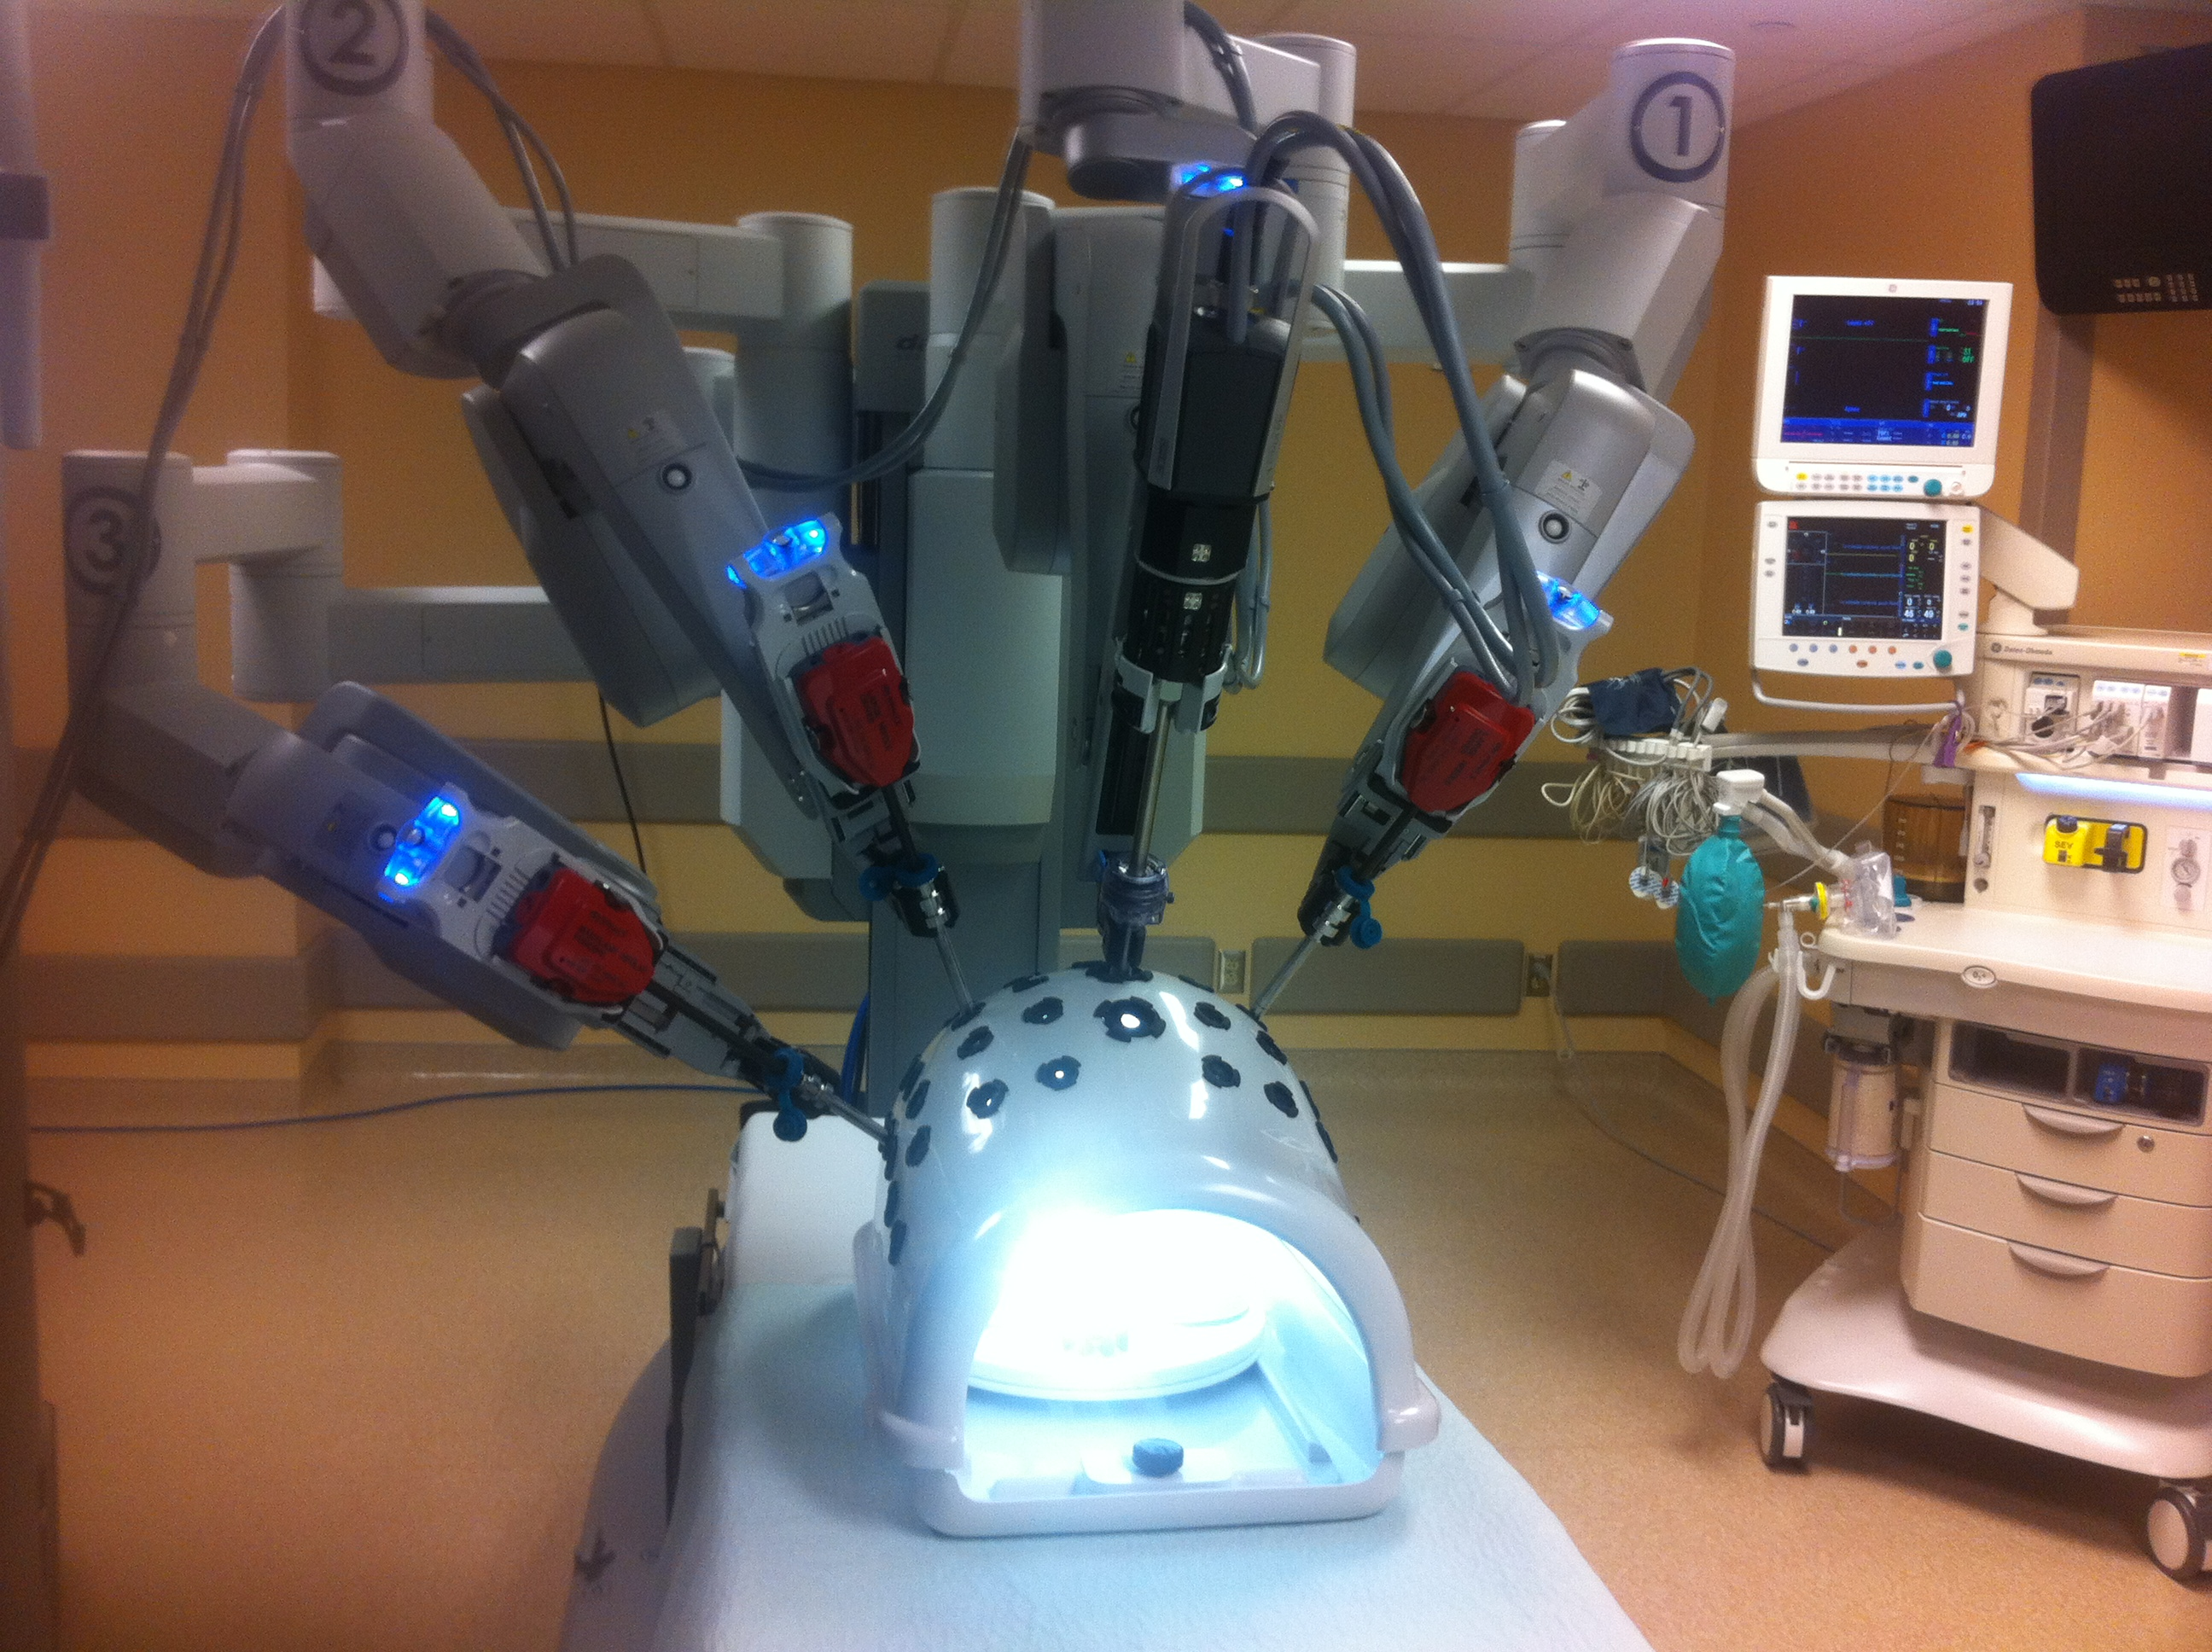 Windsor Regional Hospital's new Da Vinci machine. (Photo by Adelle Loiselle.)